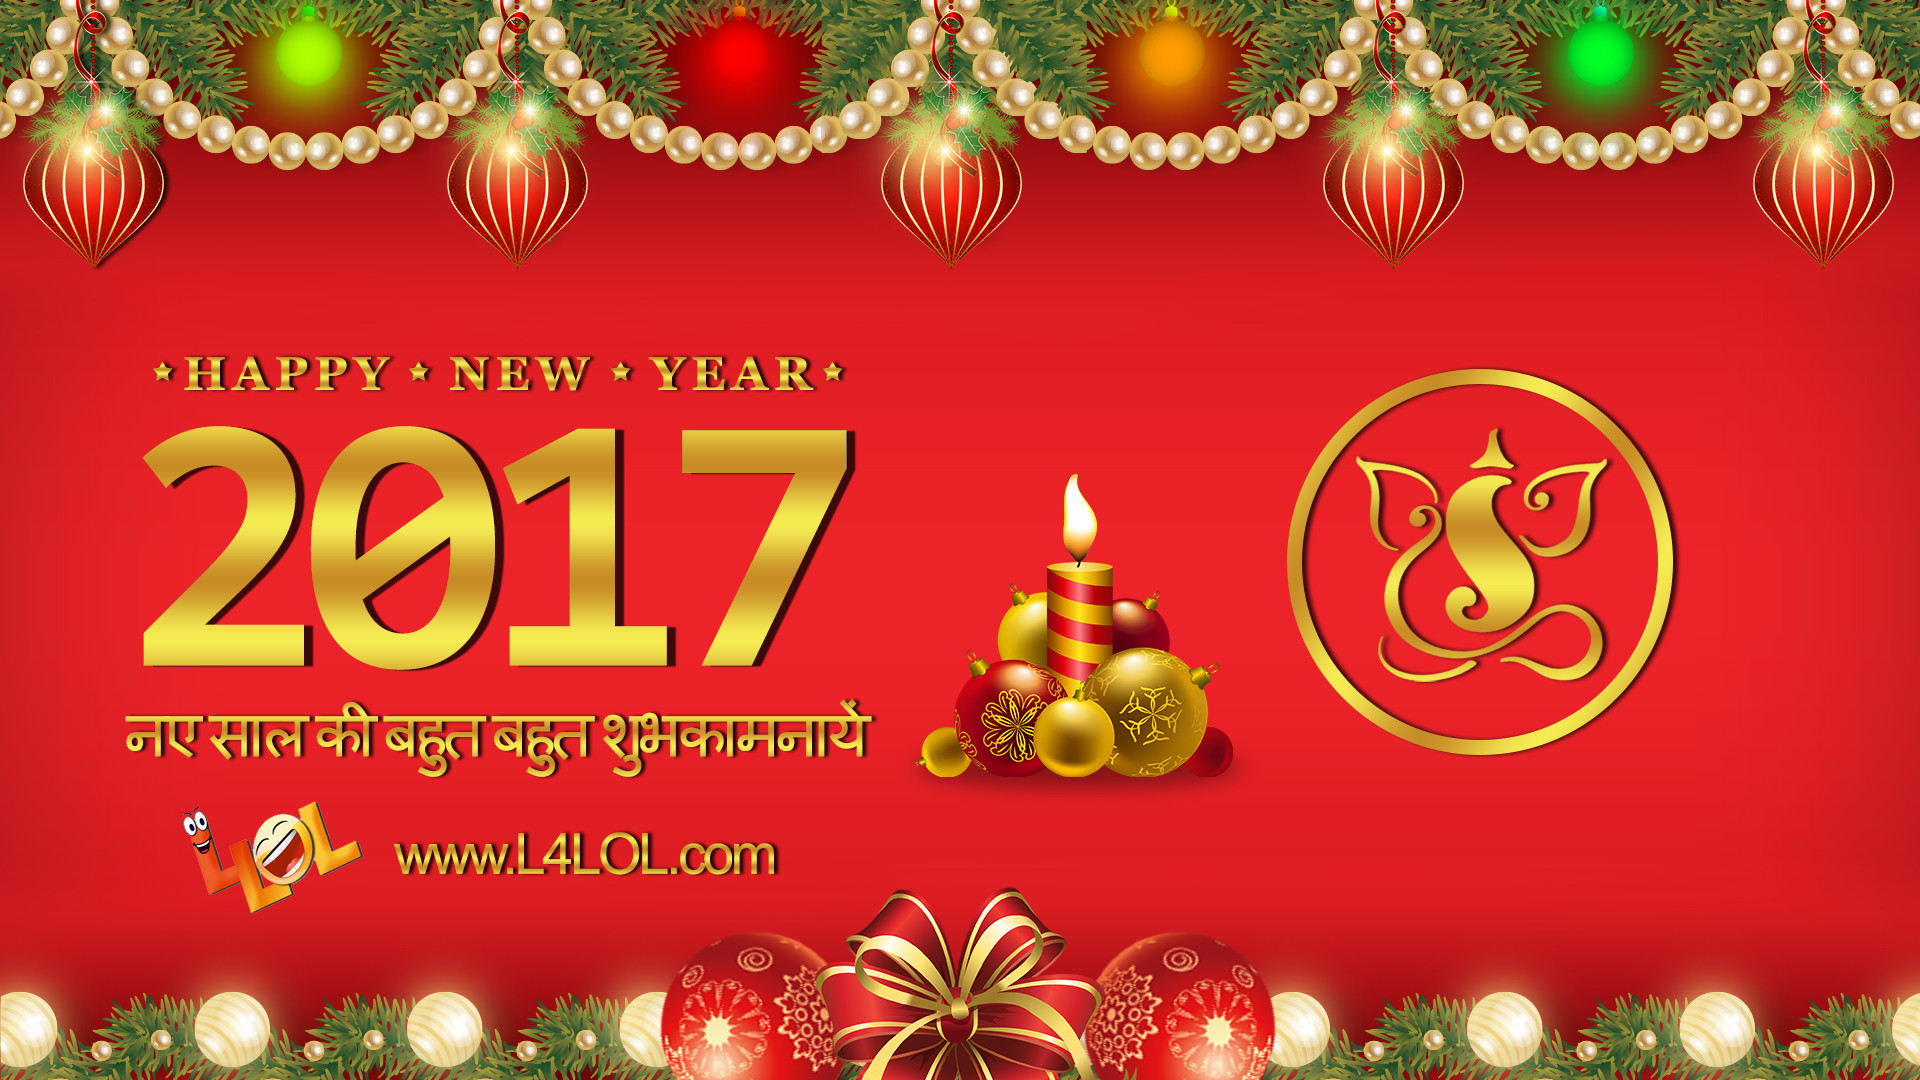 New Year 2017 Wallpaper Hd 76 Images